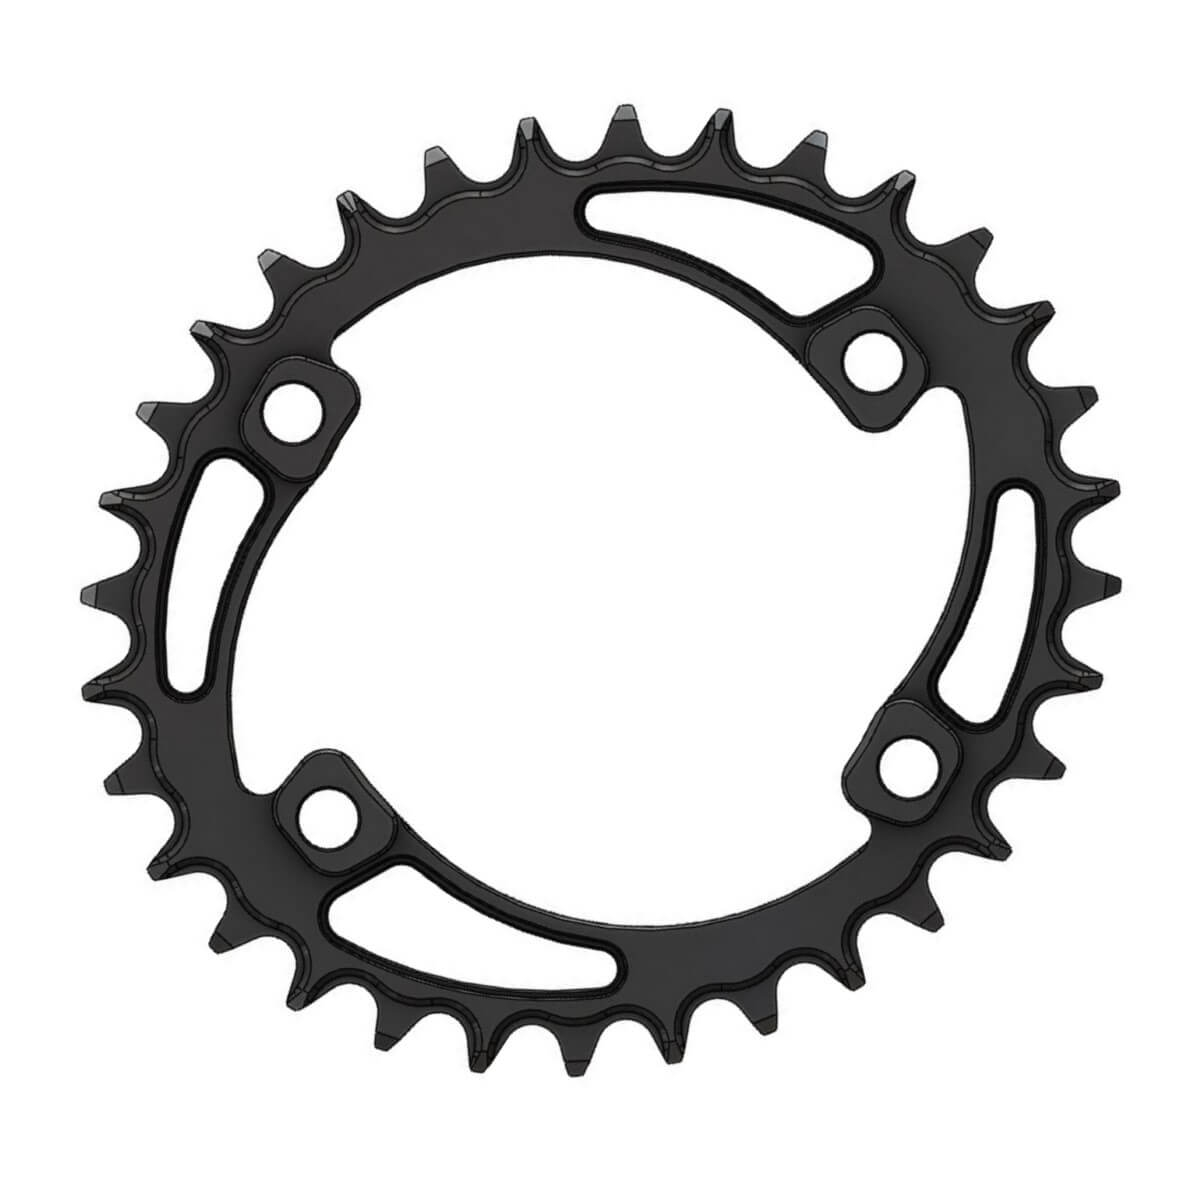 C17 Chainring Elliptic Narrow Wide 32T for Shimano 96BCD Asymmetric.